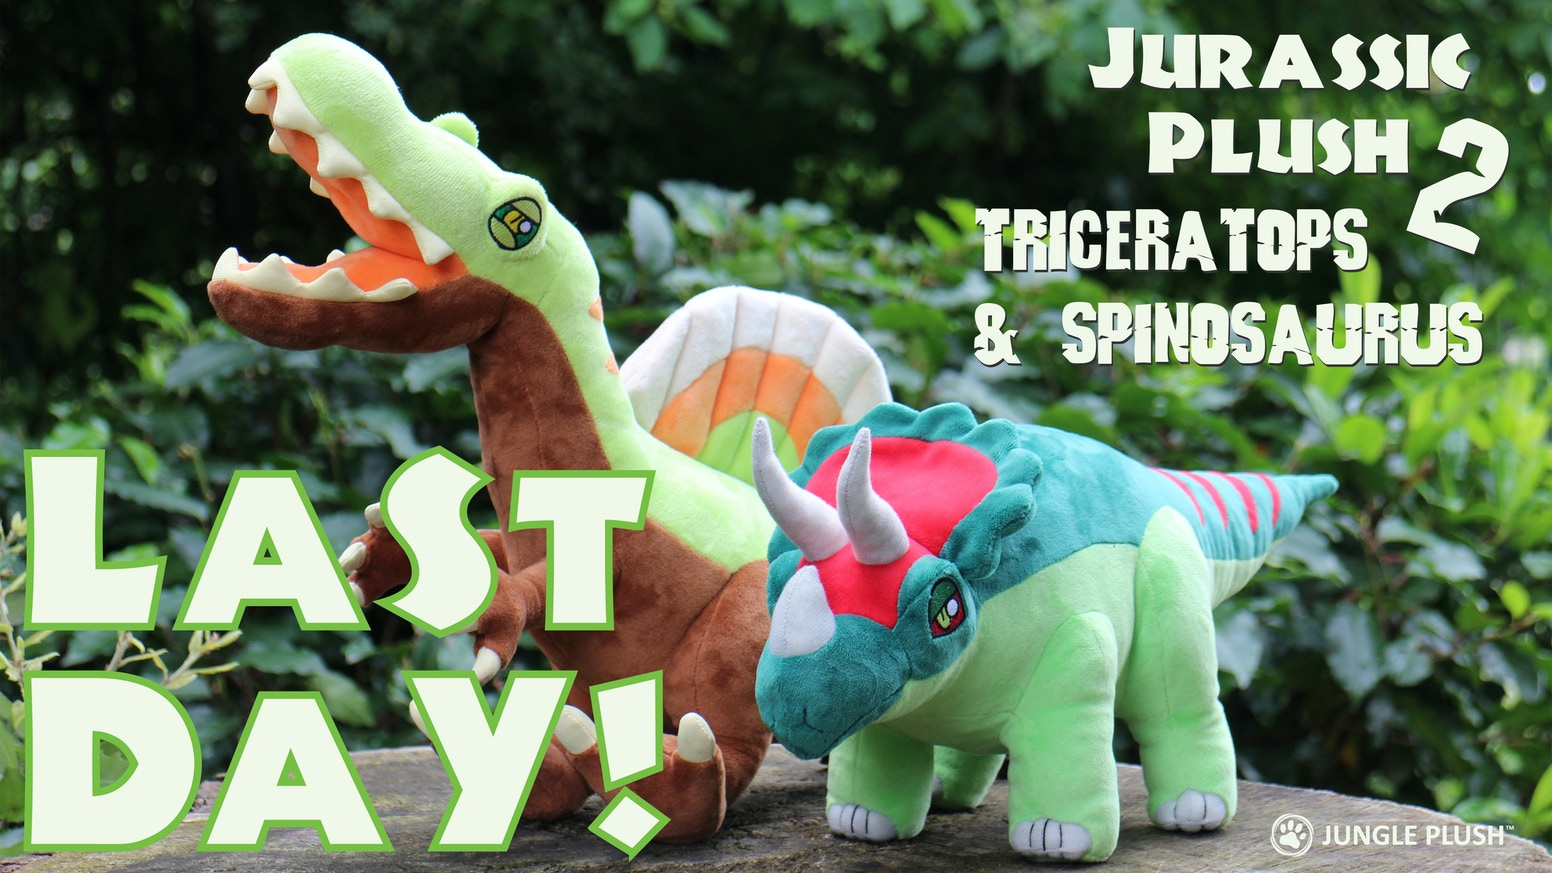 Aurora Monkey Stuffed Animal, Jurassic Plush 2 Triceratops Spinosaurus Soft Toys By Jungle Plush Kickstarter